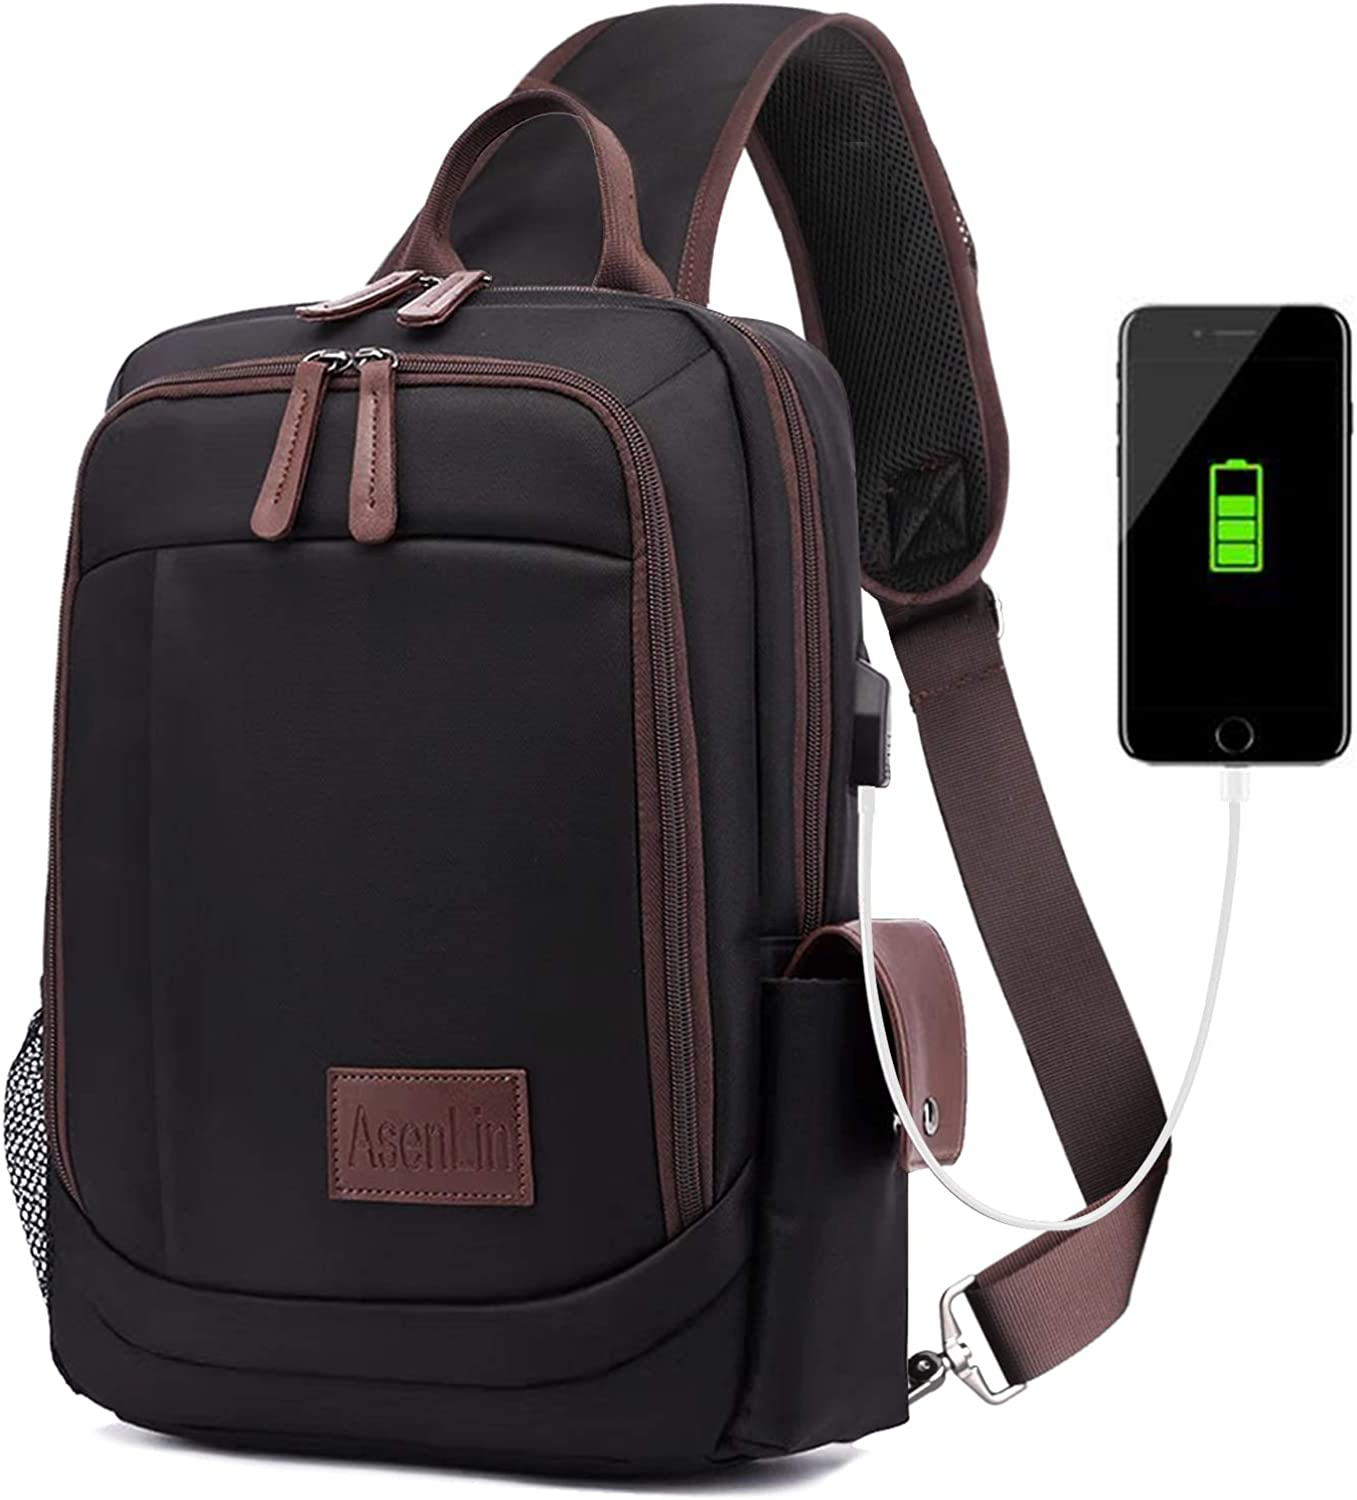 Sling Bag Shoulder Bag 12 Inch Laptop Bag with USB Charging Port Men Women Black